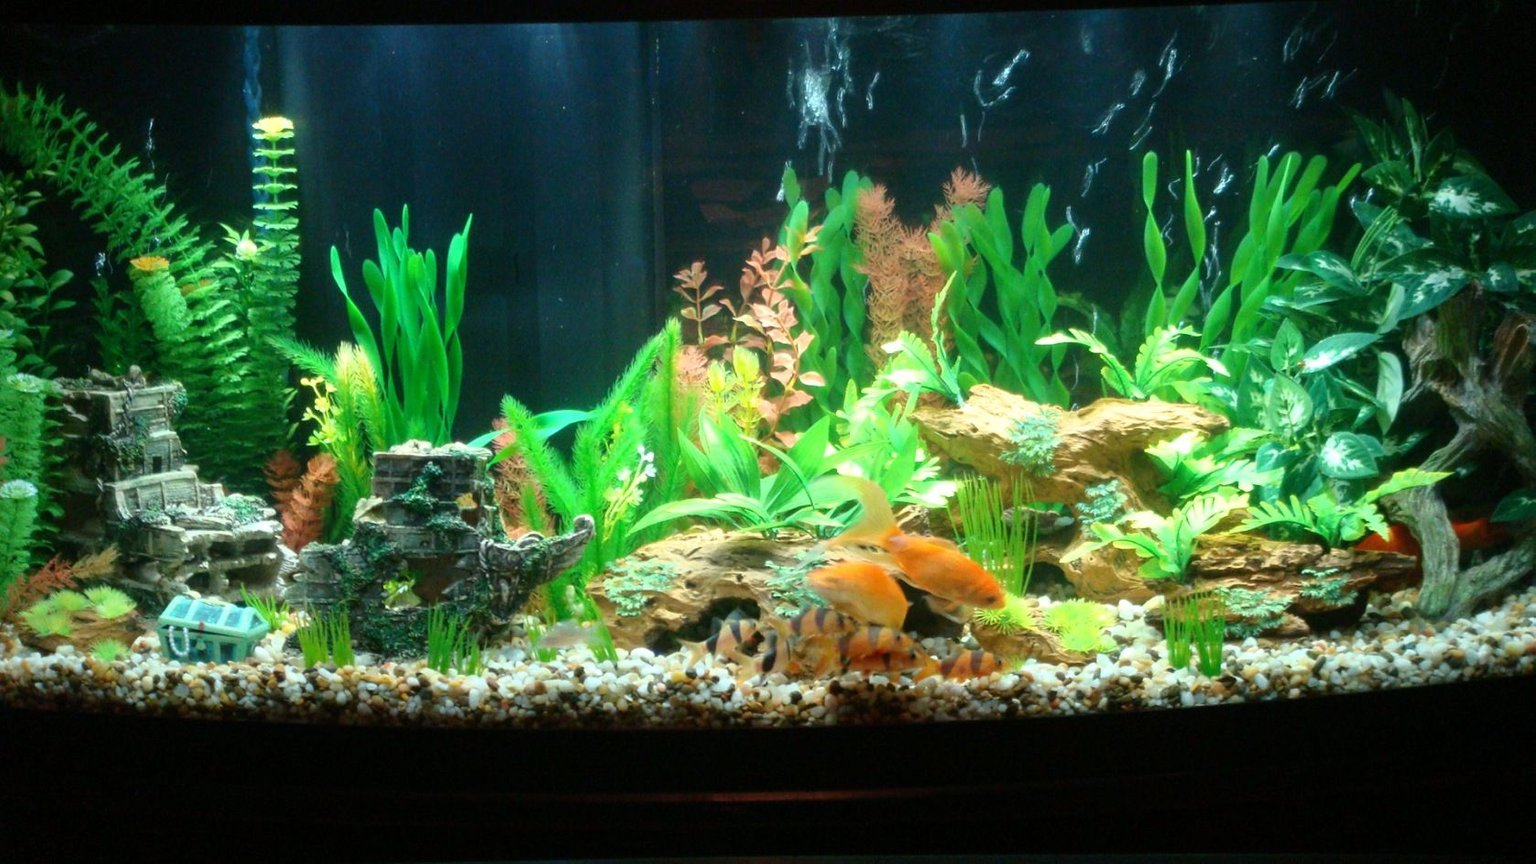 72 gallons freshwater fish tank (mostly fish and non-living decorations) - Tank Finally cycled. Fish now have a bigger home